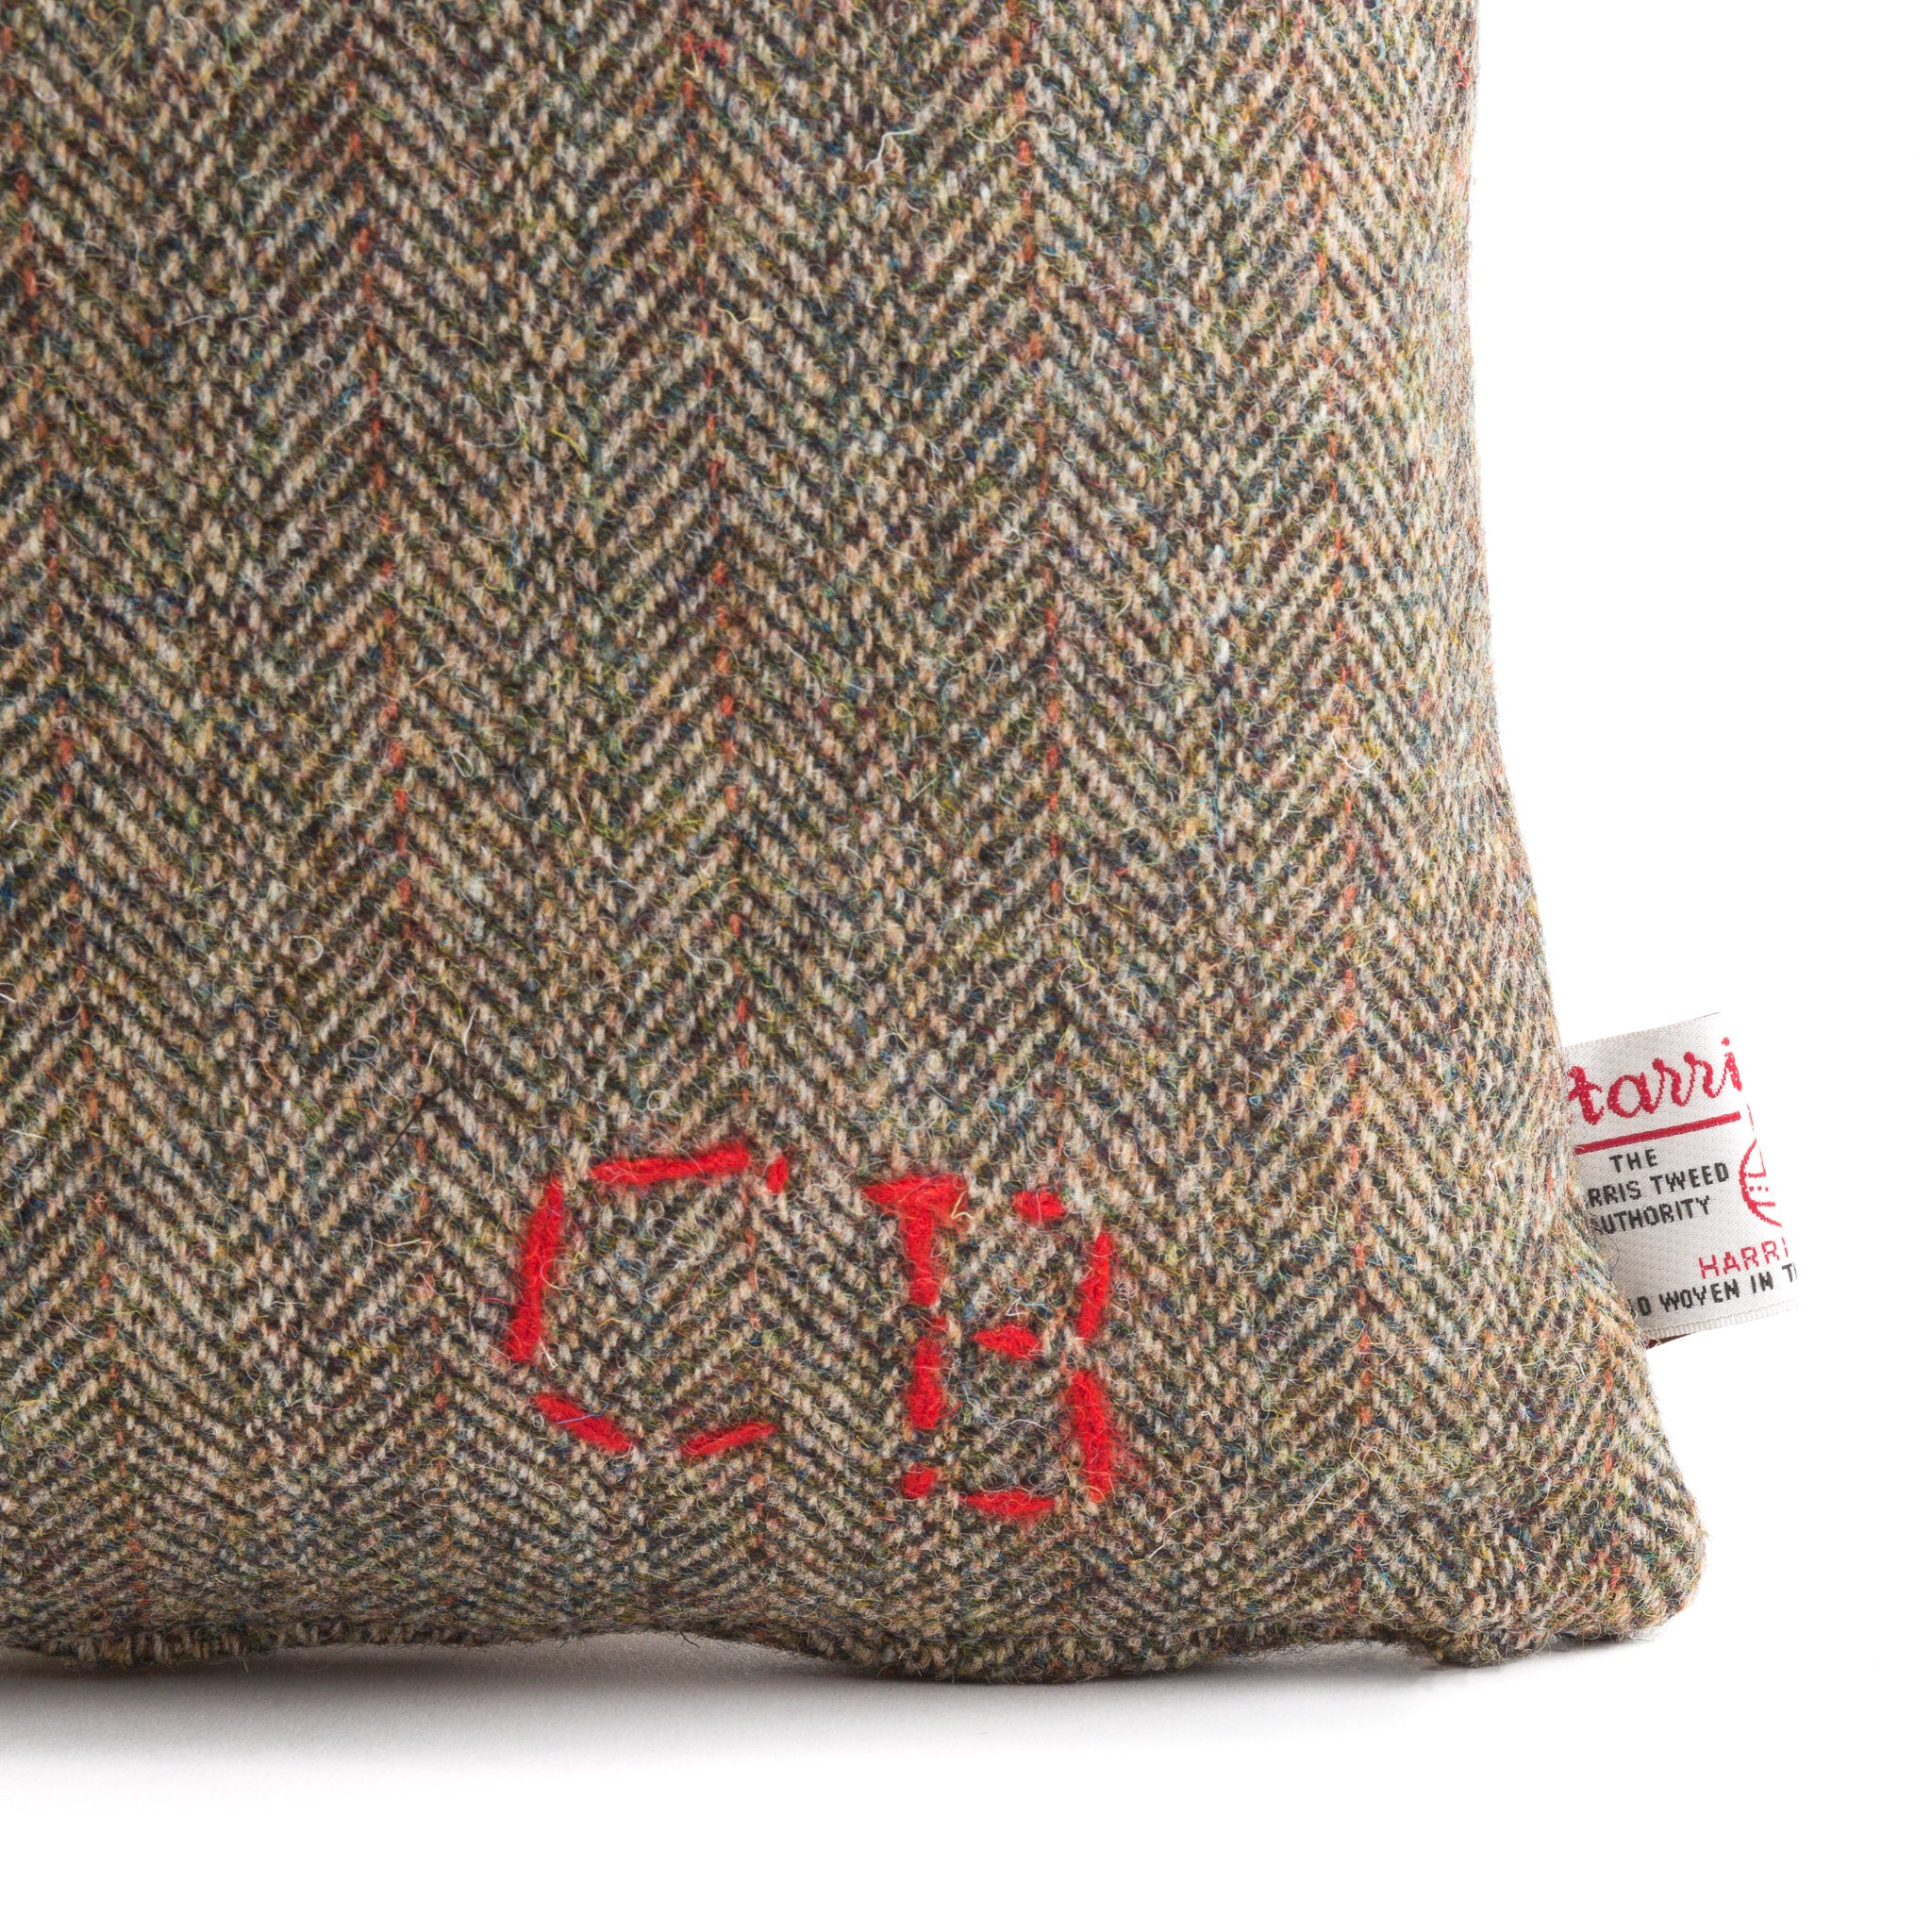 Harris Tweed/Pure Wool/Outer Hebrides/Brown/Herringbone/Red Detail/Scatter/Cushion/Detail/